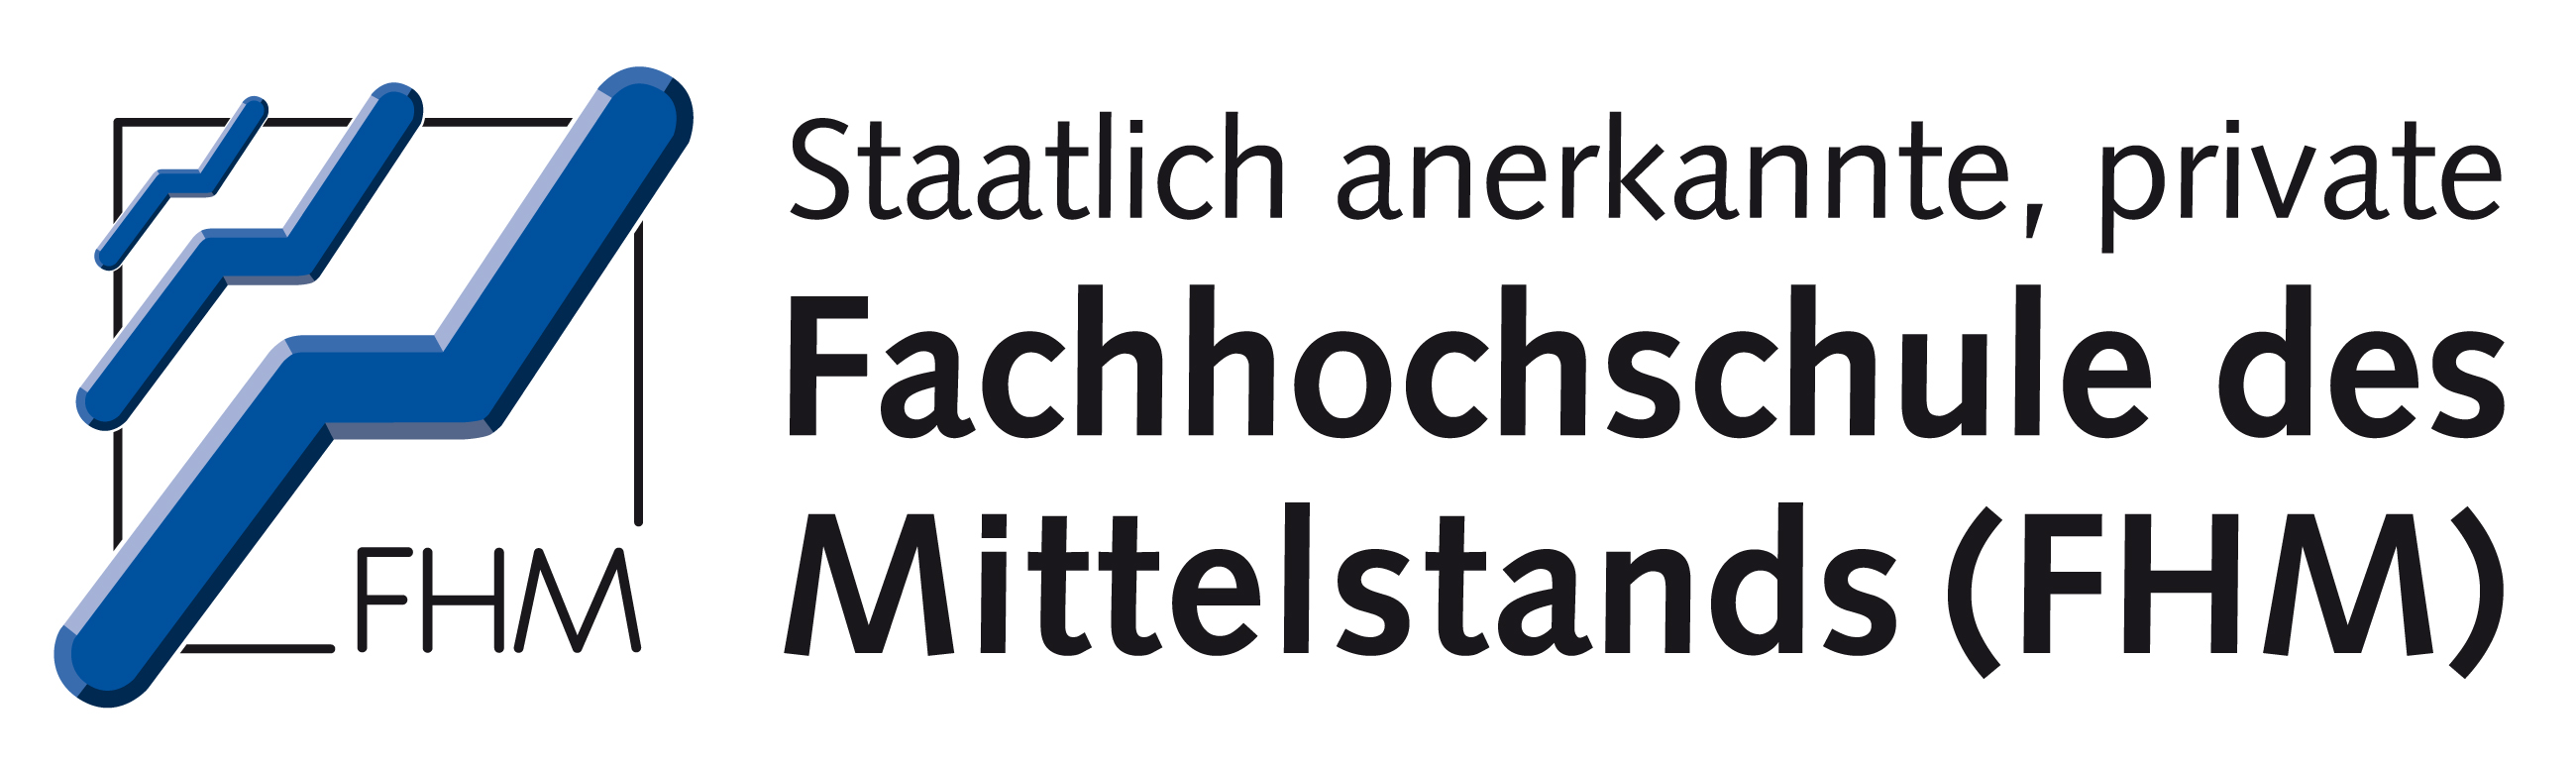 Director for International Management, University of Applied Sciences-Fachhochschule des Mittelstands (FHM)